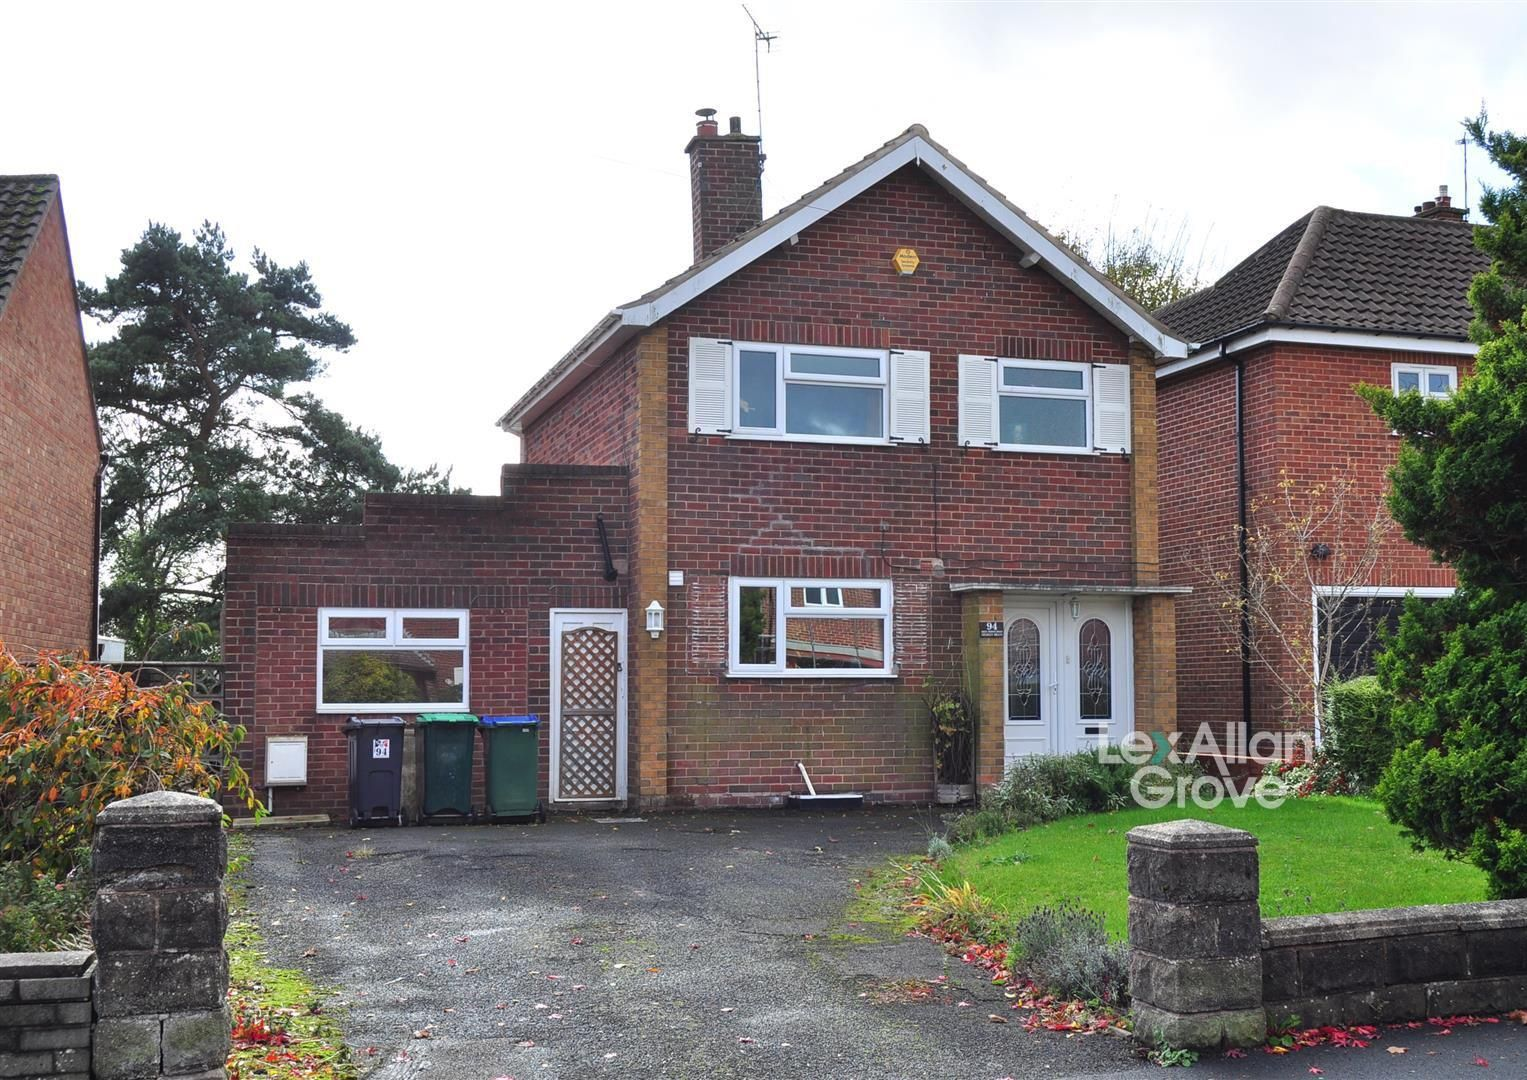 3 bed detached for sale, B64